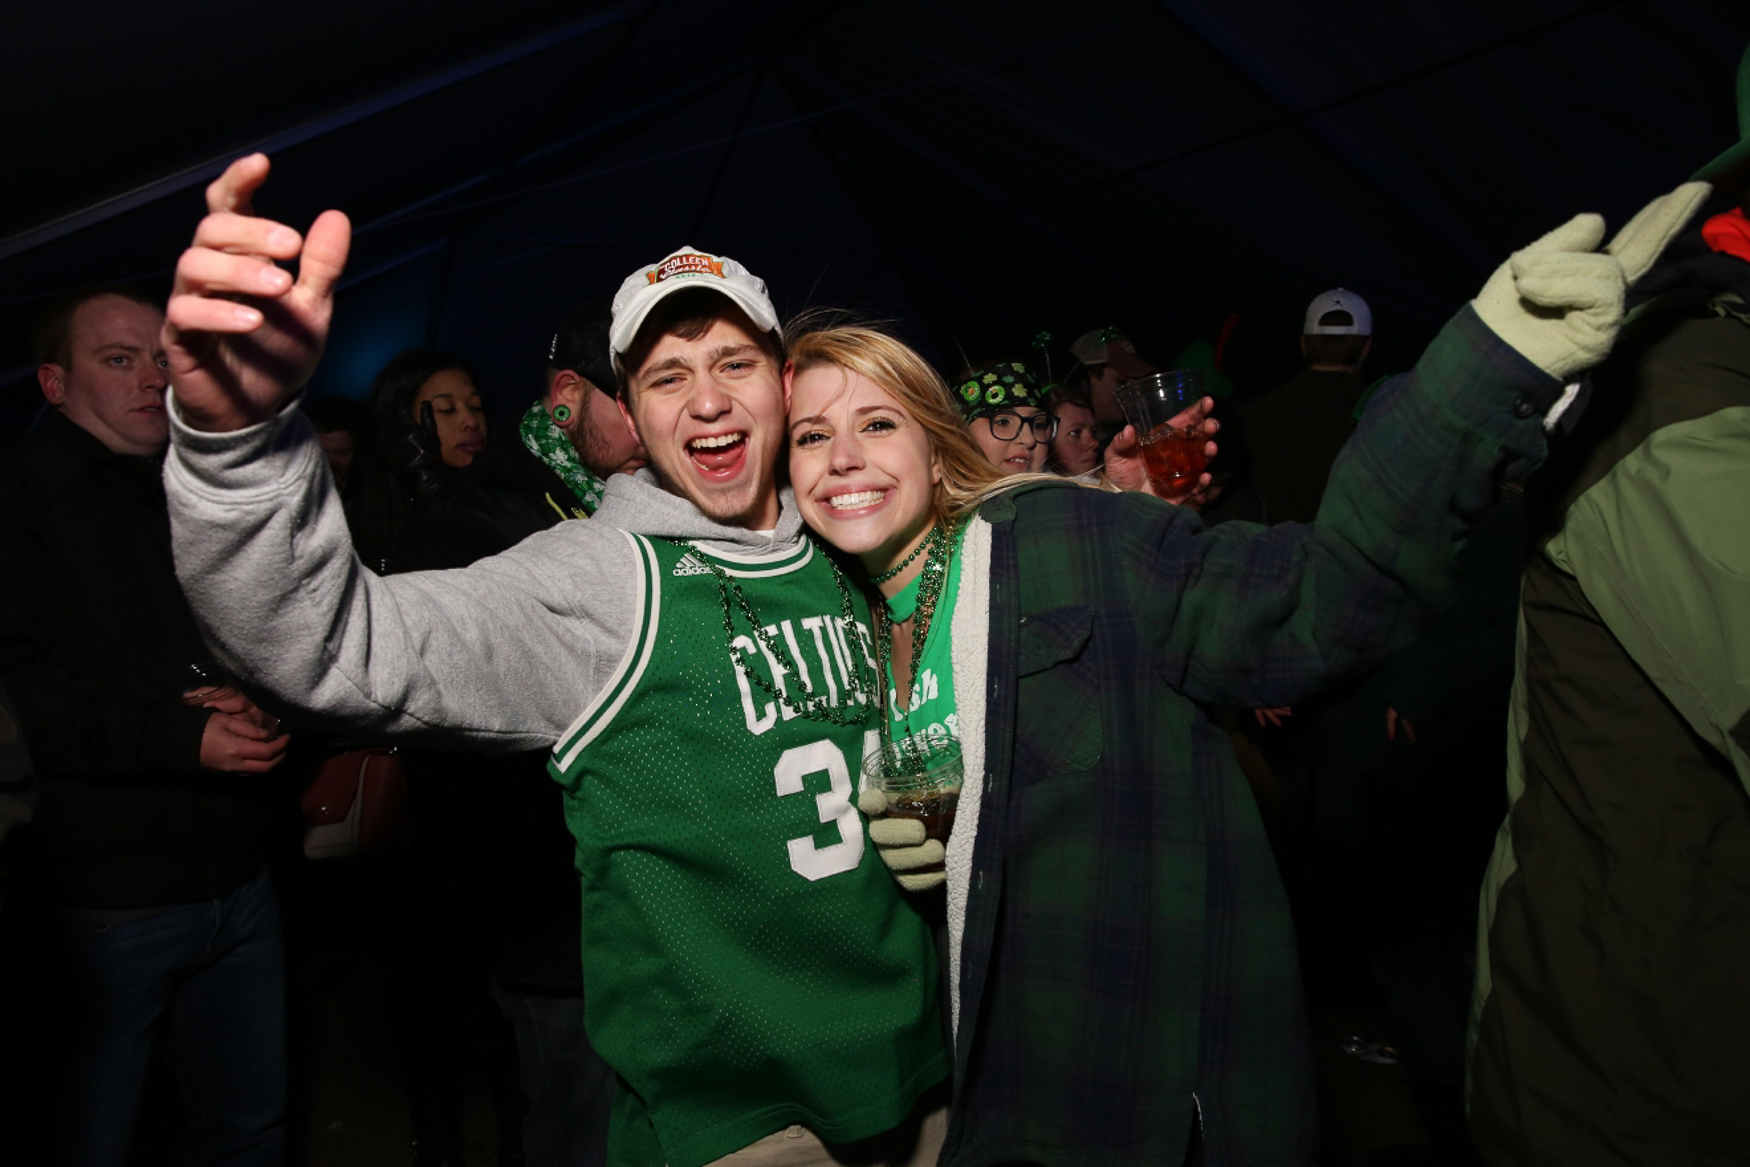 If you didn't get to bust out your green gear this St. Patrick's Day, you can put it to good use at ShamrockFest. The beer will be flowing and you can jam out to live music and DJs at this wild party at RFK Stadium. Tickets start at $25.{ } (Amanda Andrade-Rhoades/DC Refined)